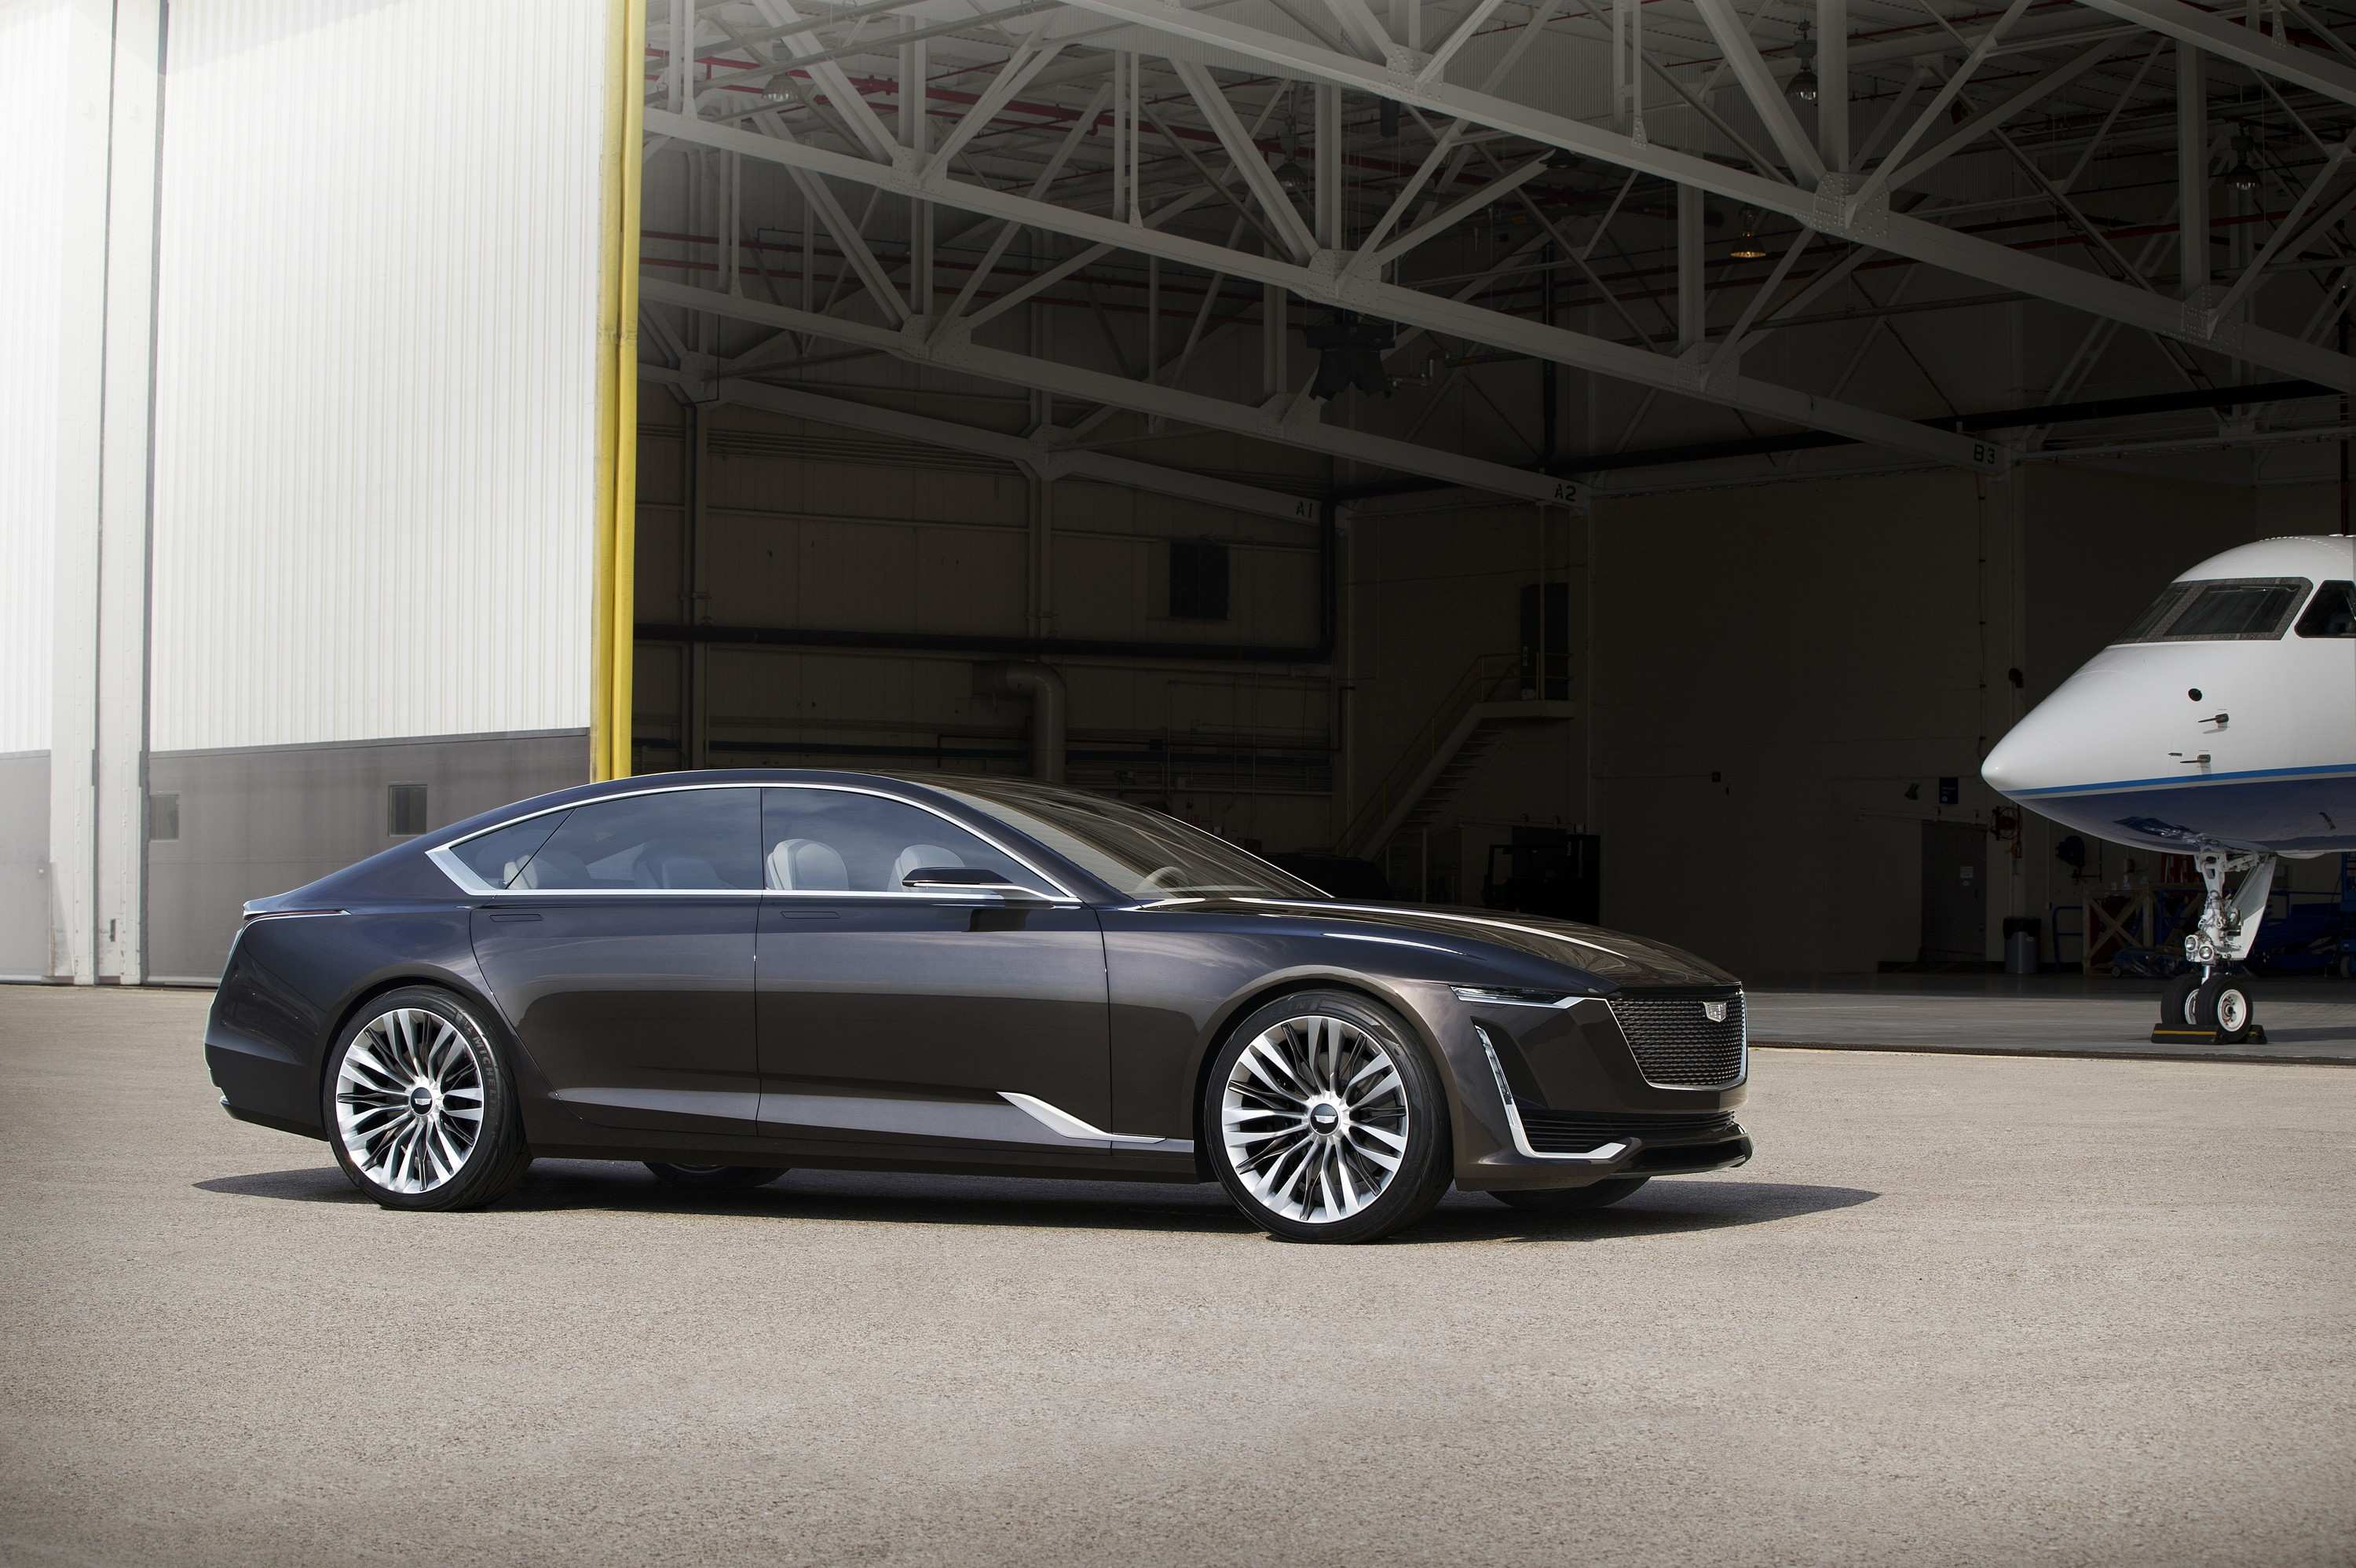 68 Gallery of 2020 Cadillac CTS V Spy Shoot for 2020 Cadillac CTS V